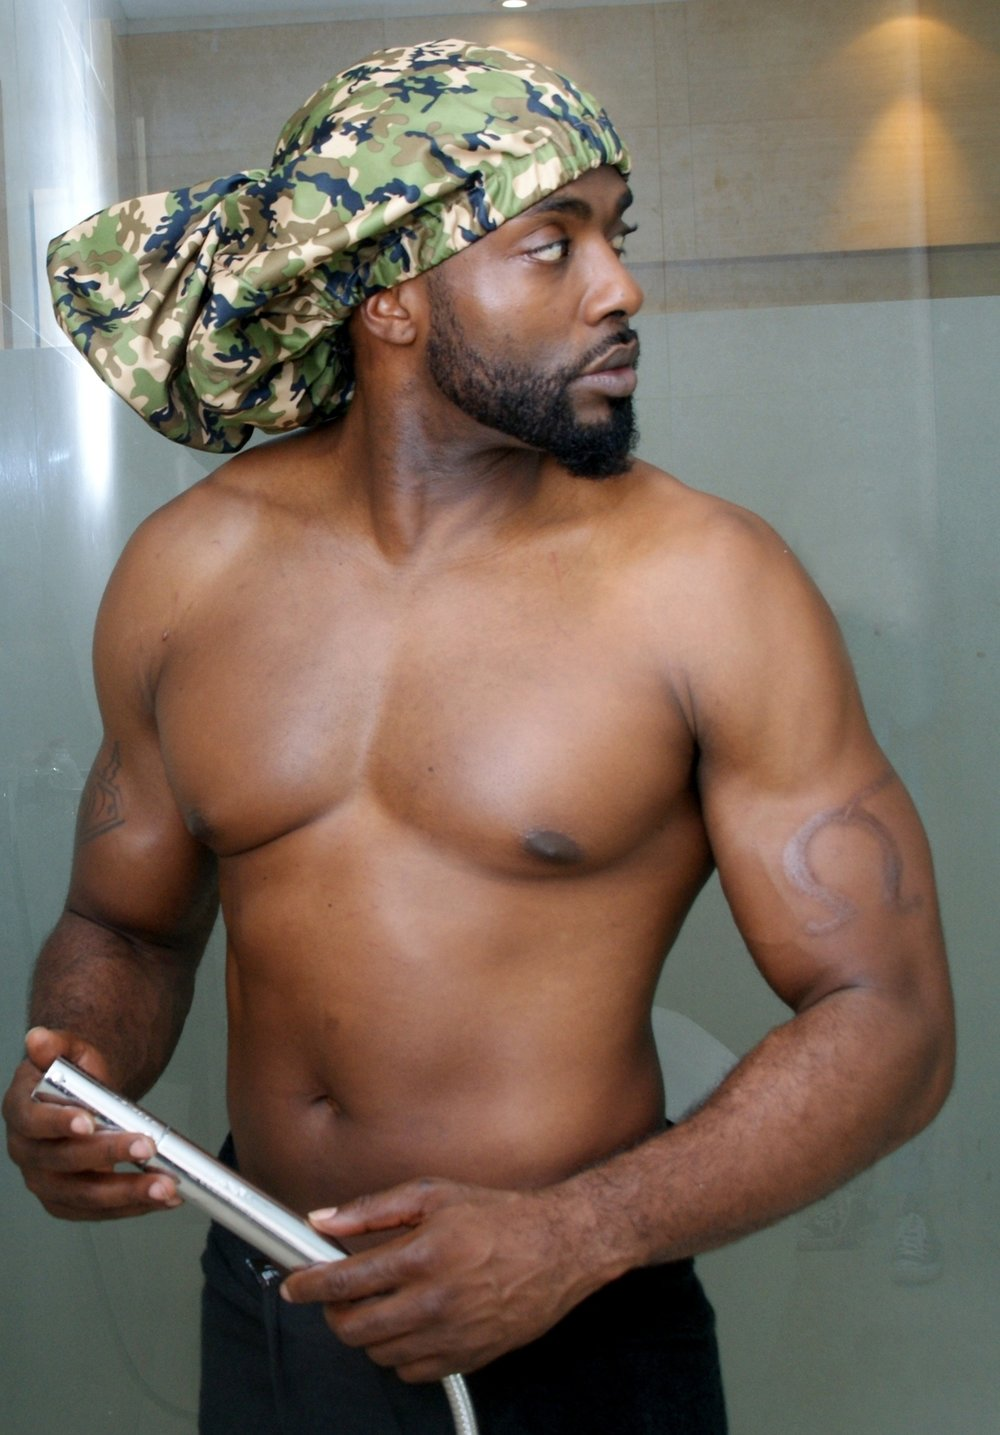 It's nice to have a shower cap that covers my dreads and comes in colors for men. - Troy in Maryland